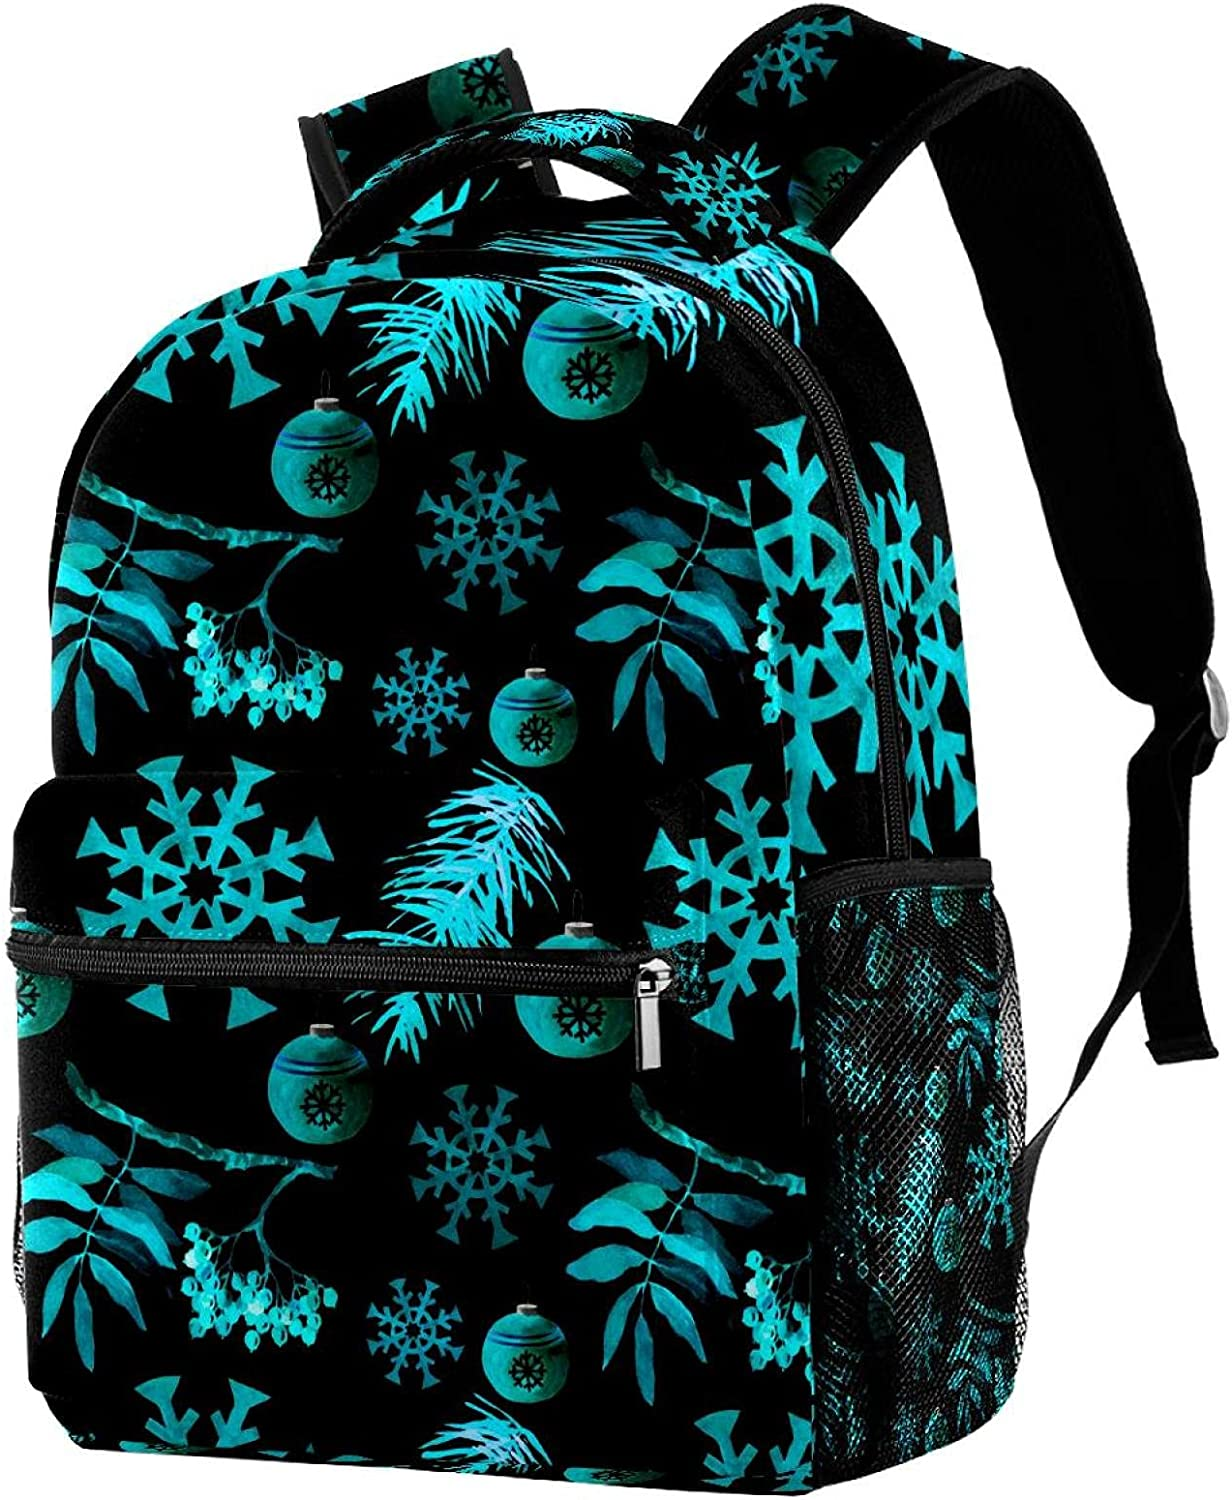 Fashionable Lightweight Backpack College School Bag Laptop Seasonal Wrap Introduction Adult Daypack for